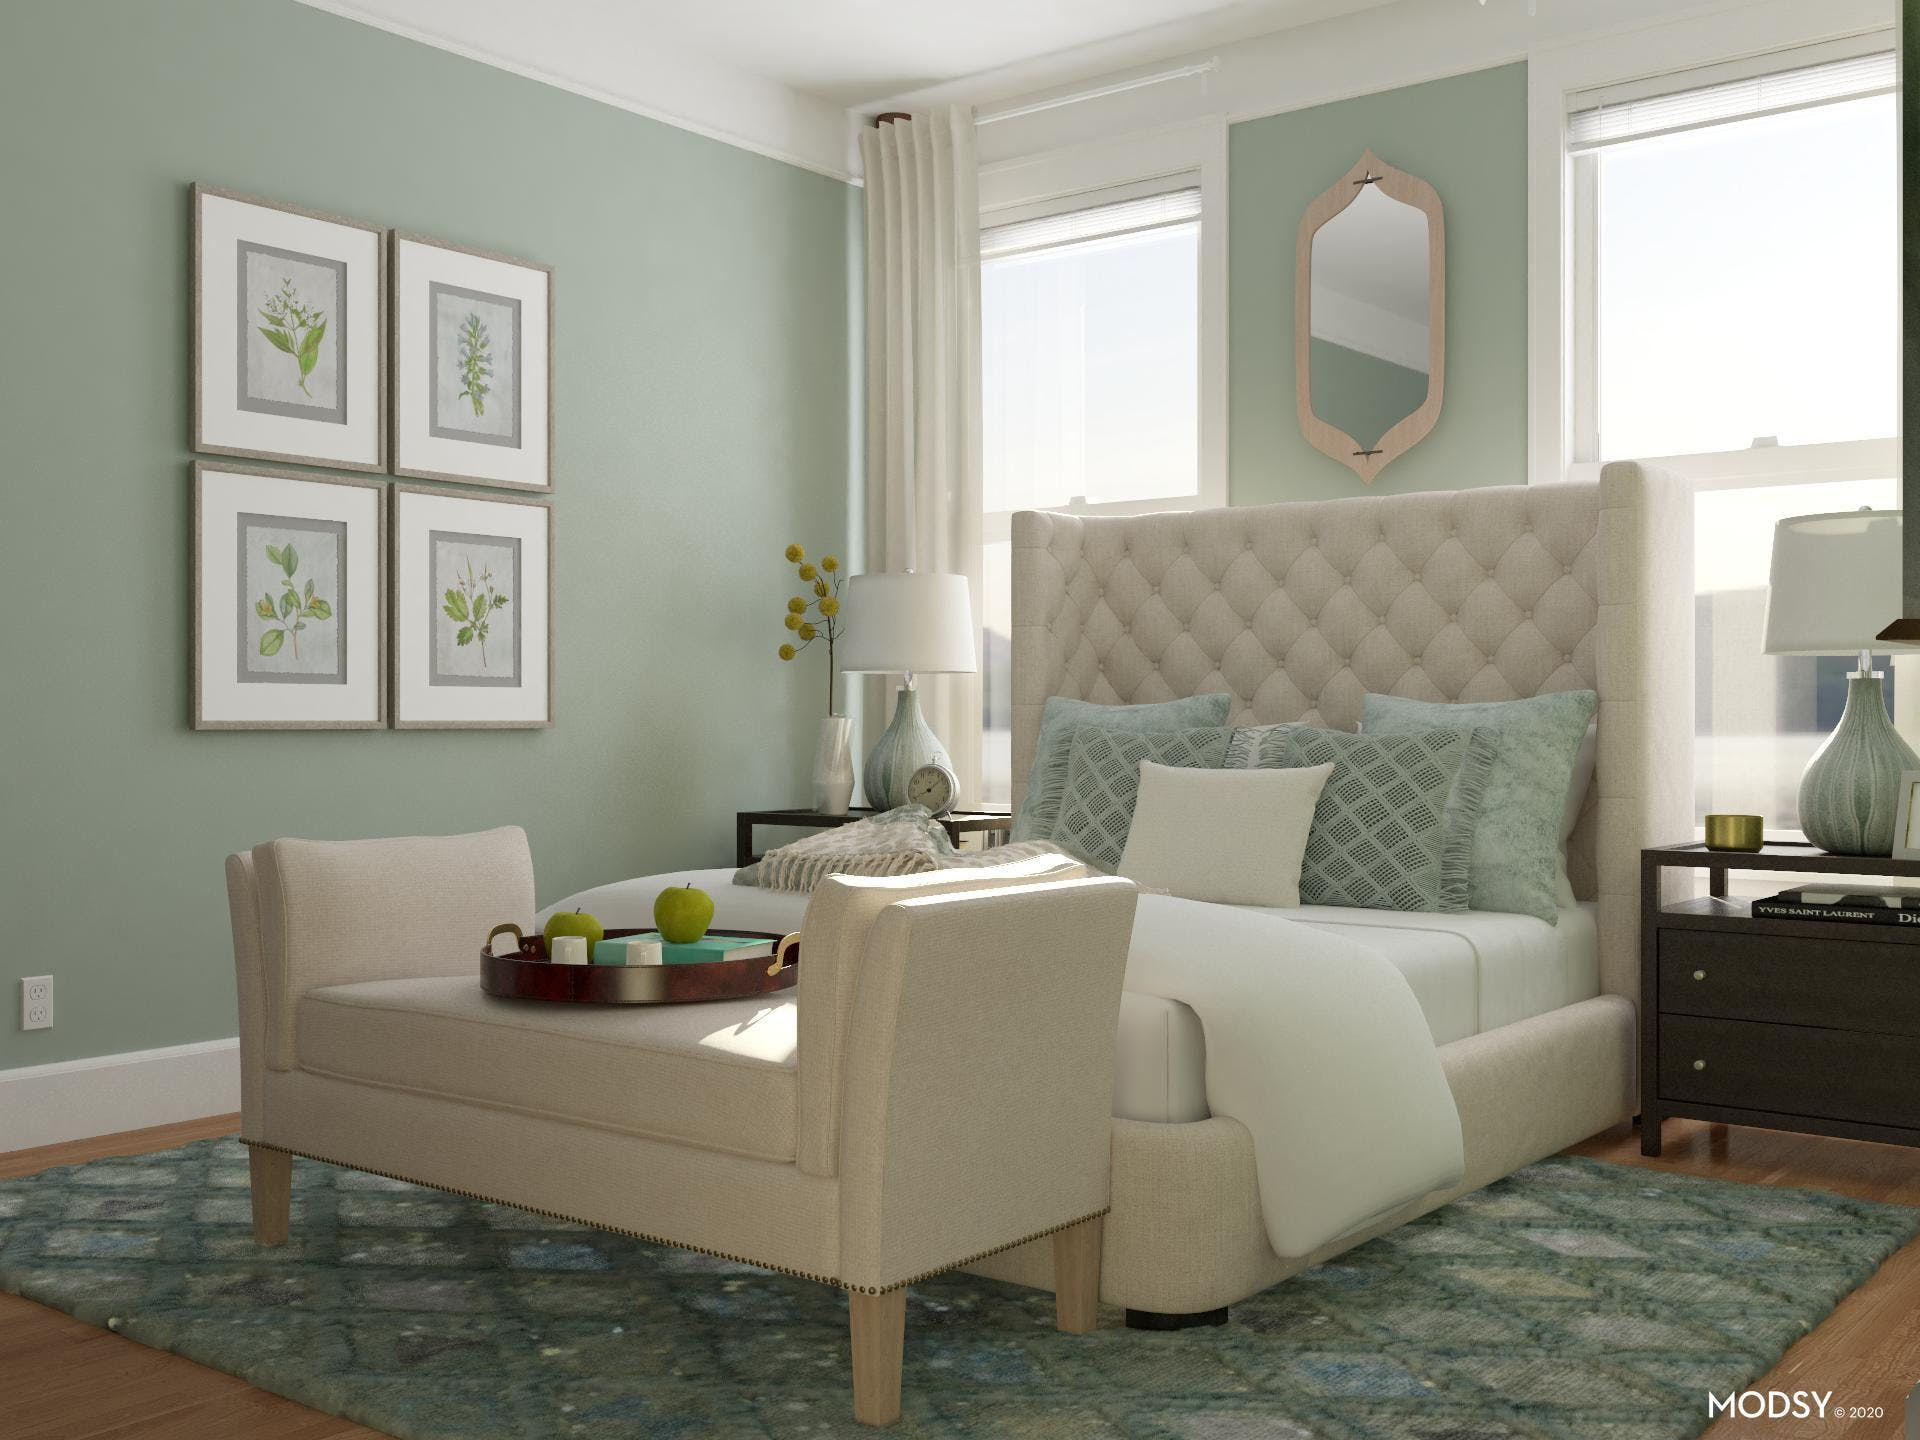 Green toned transitional bedroom